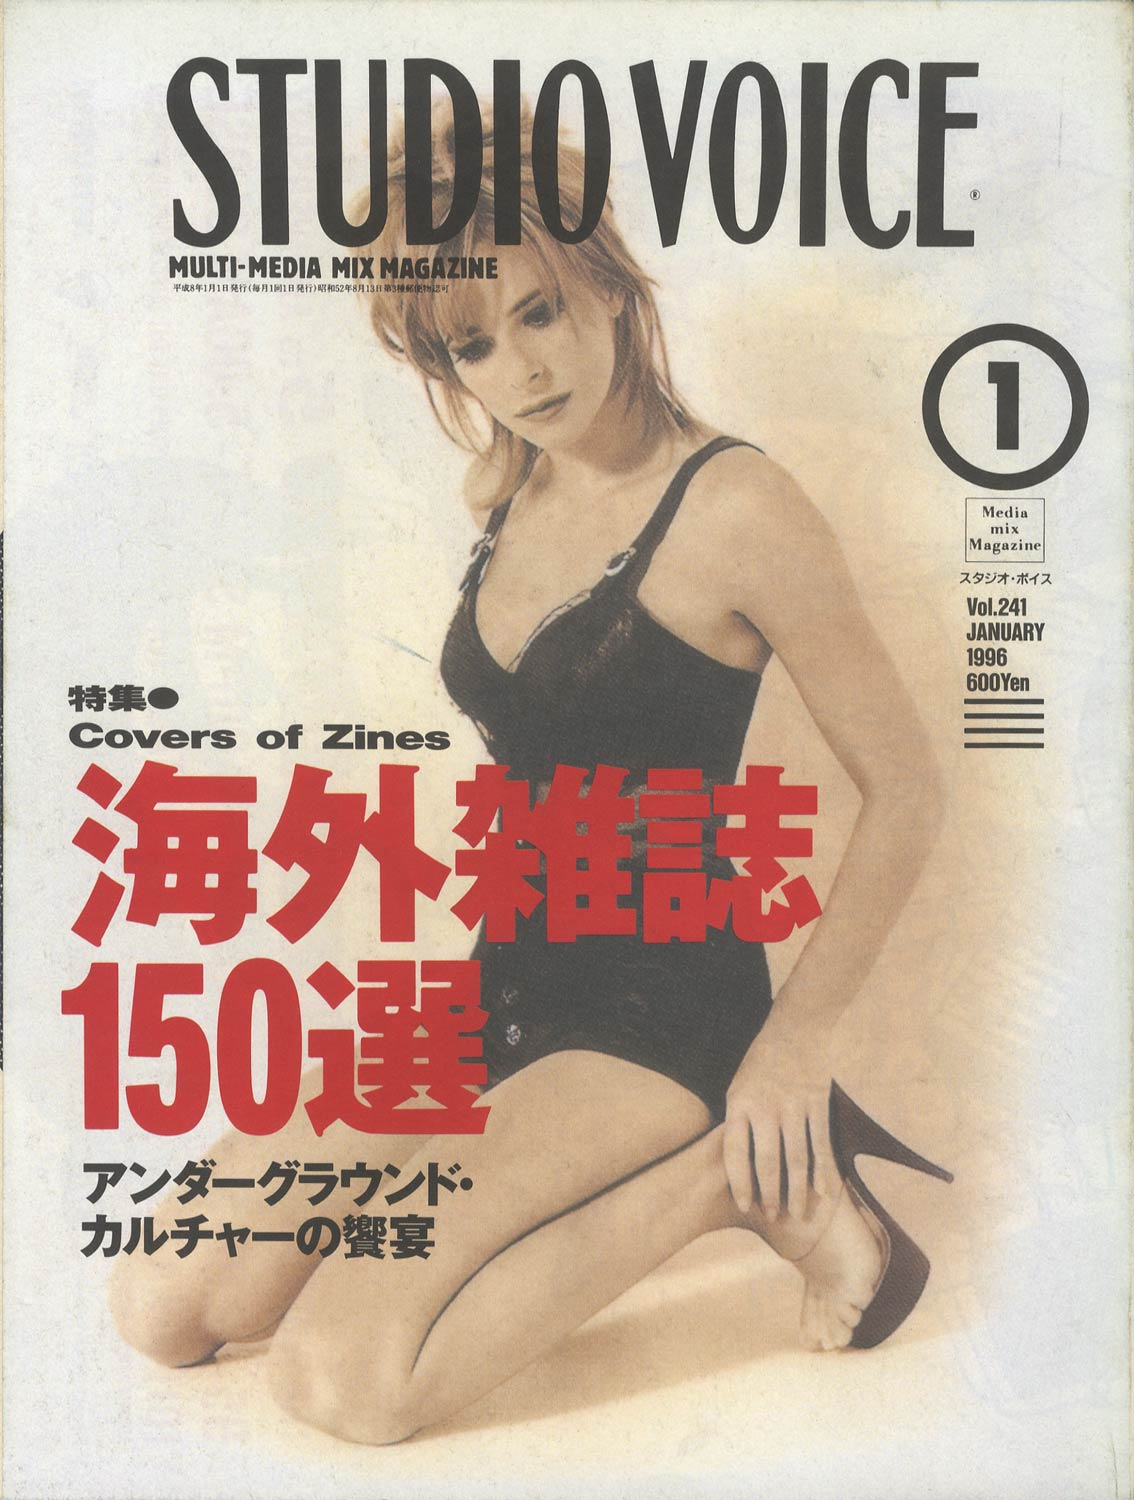 STUDIO VOICE MULTI-MEDIA MIX MAGAZINE/スタジオ・ボイス 1996年1月号 VOL.241